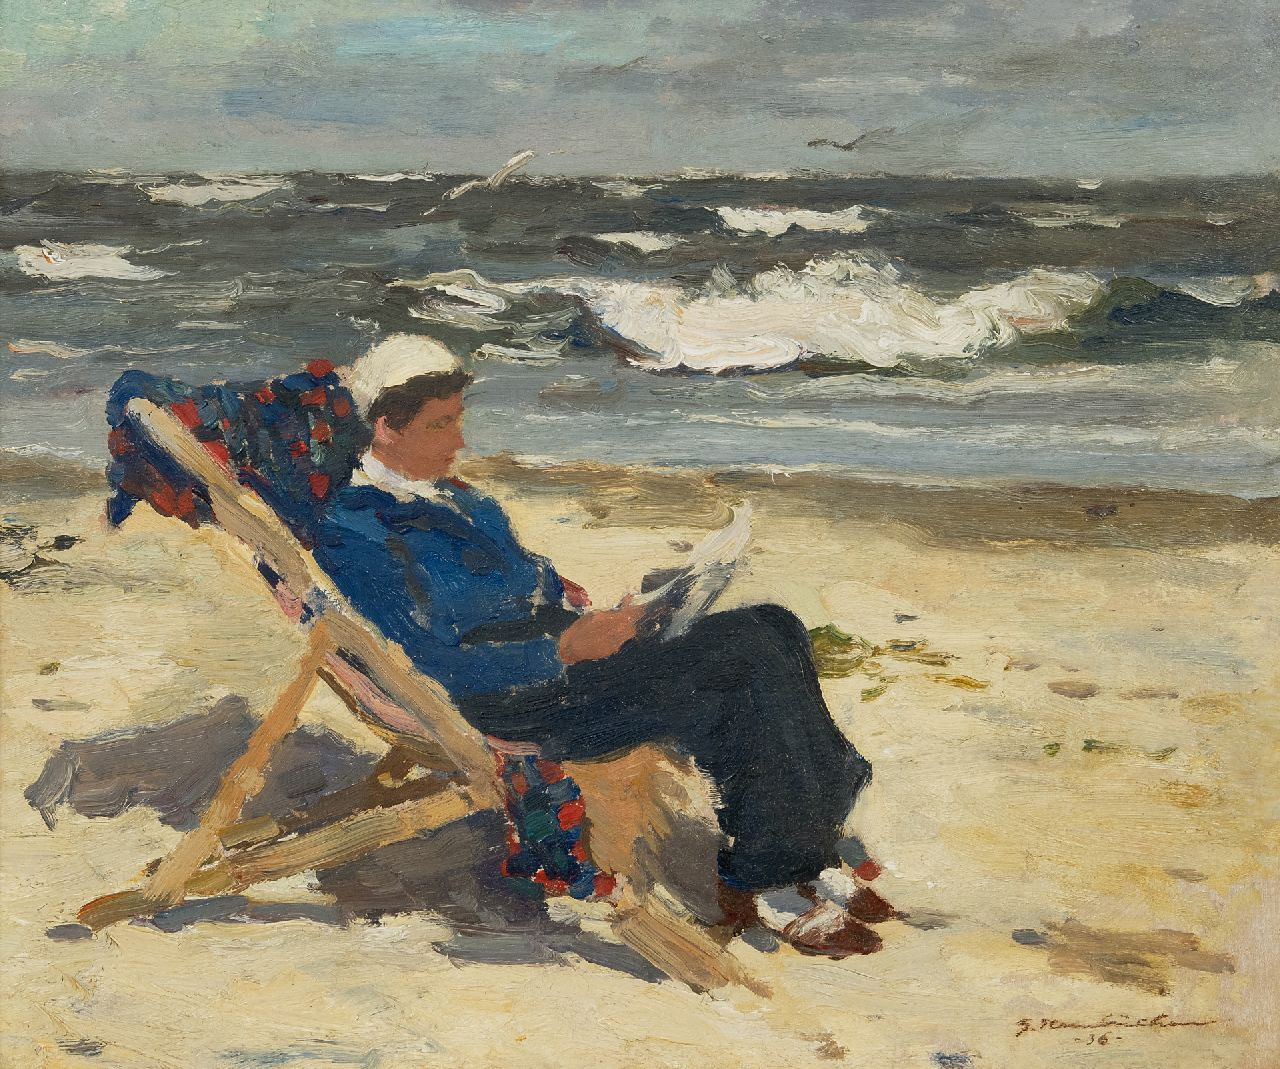 Georg Hambüchen | Lady reading in a beach chair, oil on board, 38.4 x 46.0 cm, signed l.r. and dated '36